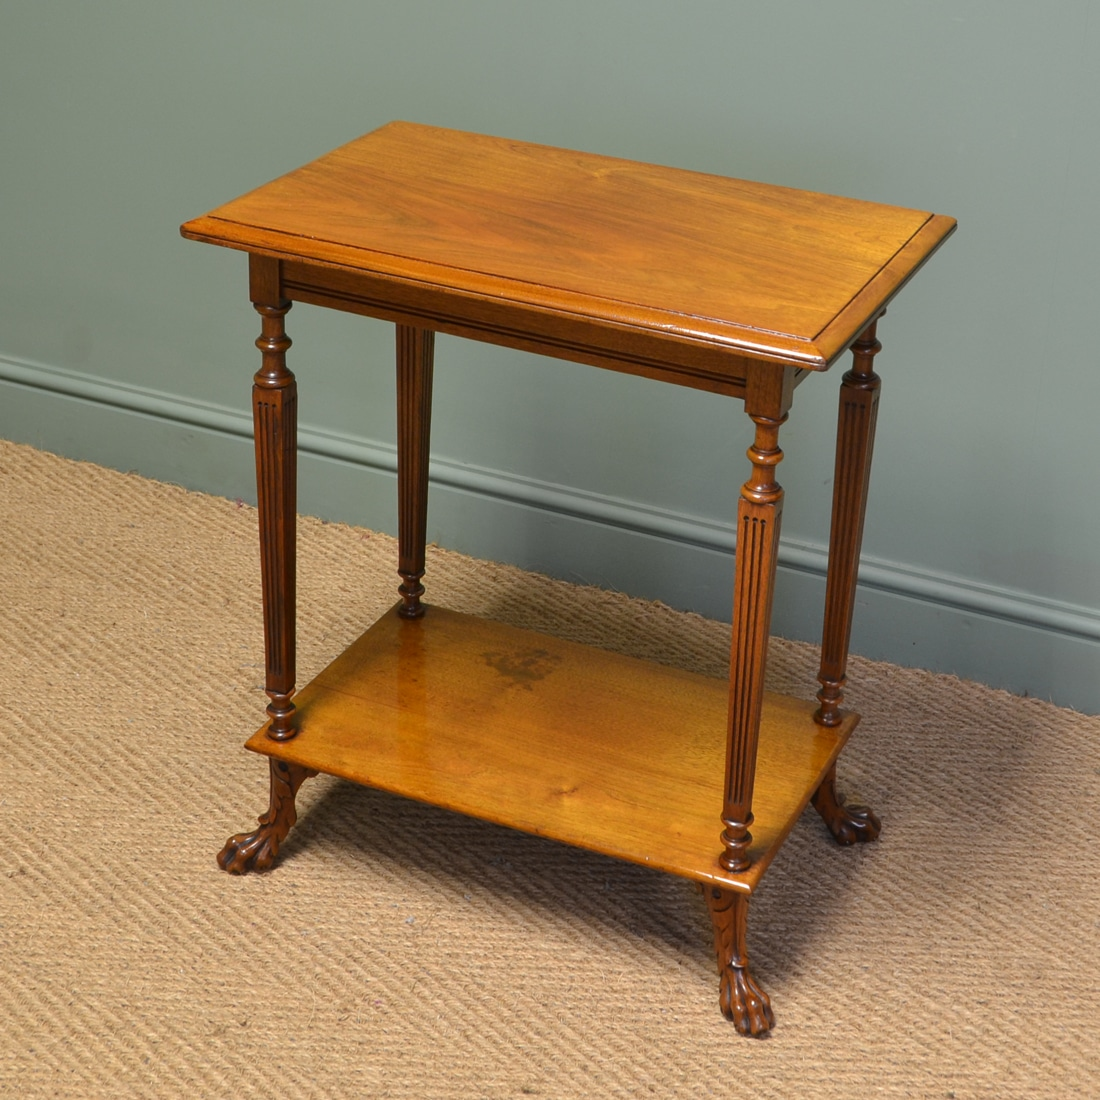 Unusual victorian walnut shoolbred antique occasional lamp table unusual victorian walnut shoolbred antique occasional lamp table geotapseo Image collections